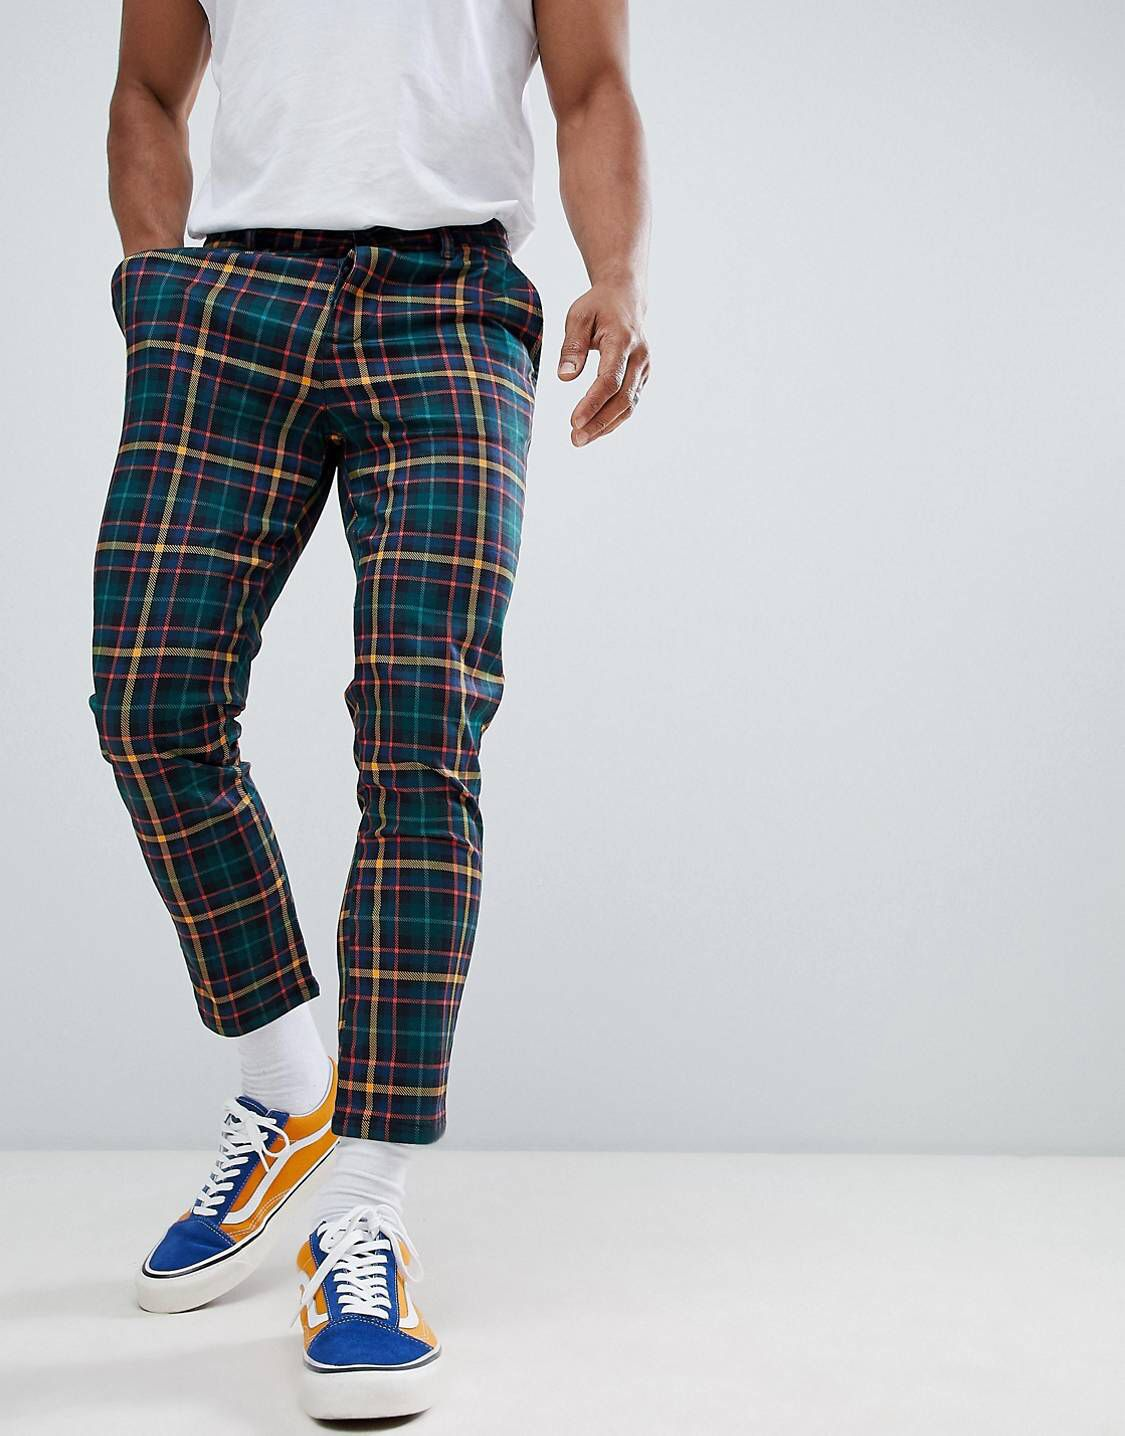 Design Skinny Cropped Pants In Plaid Check Kikokikote Mens Chino